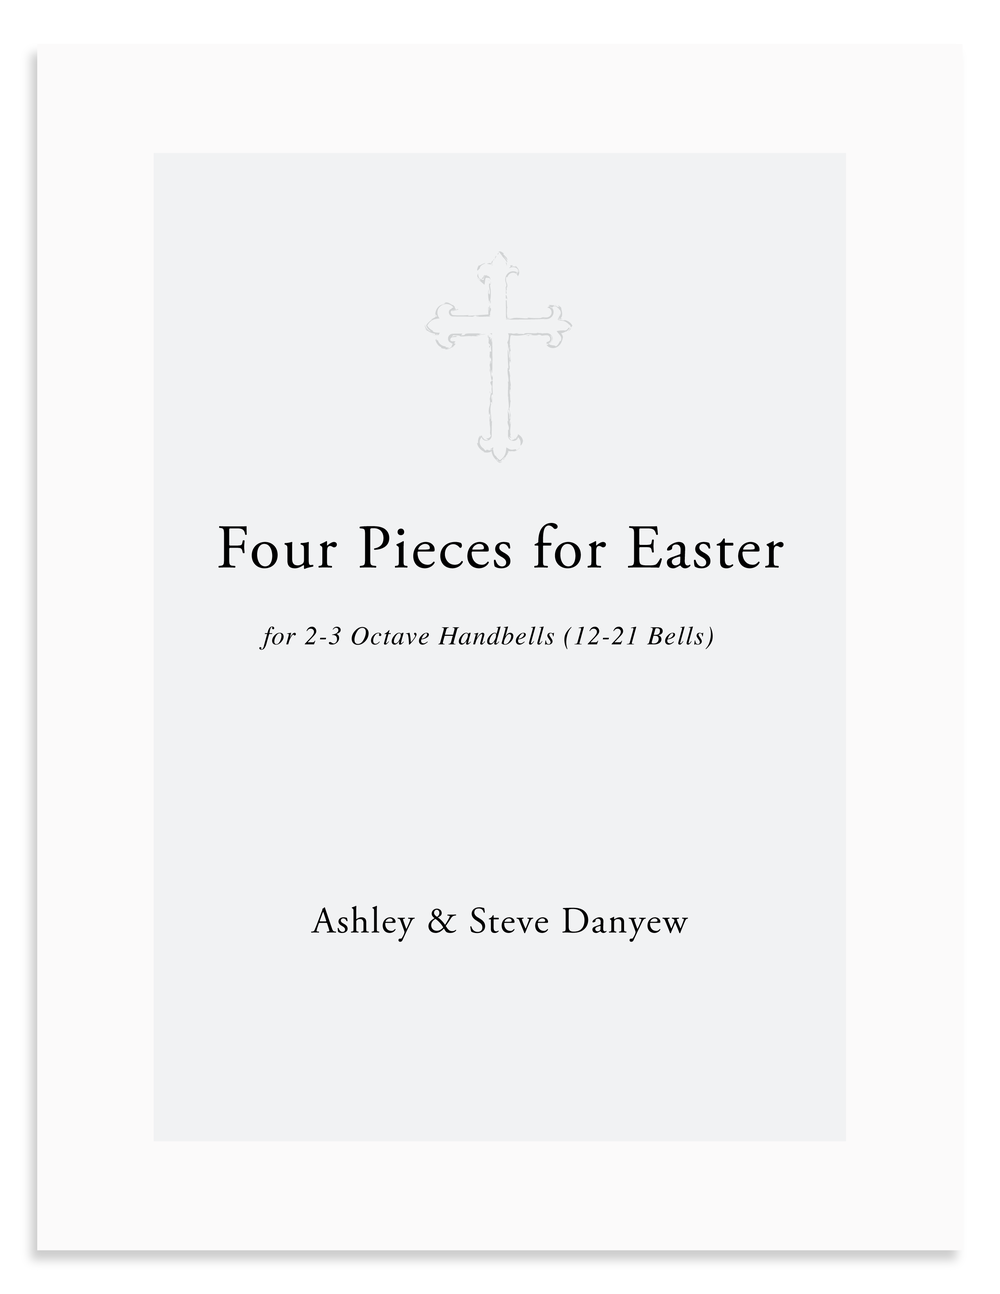 Four Pieces for Easter - a digital collection for 12-21 handbells.png